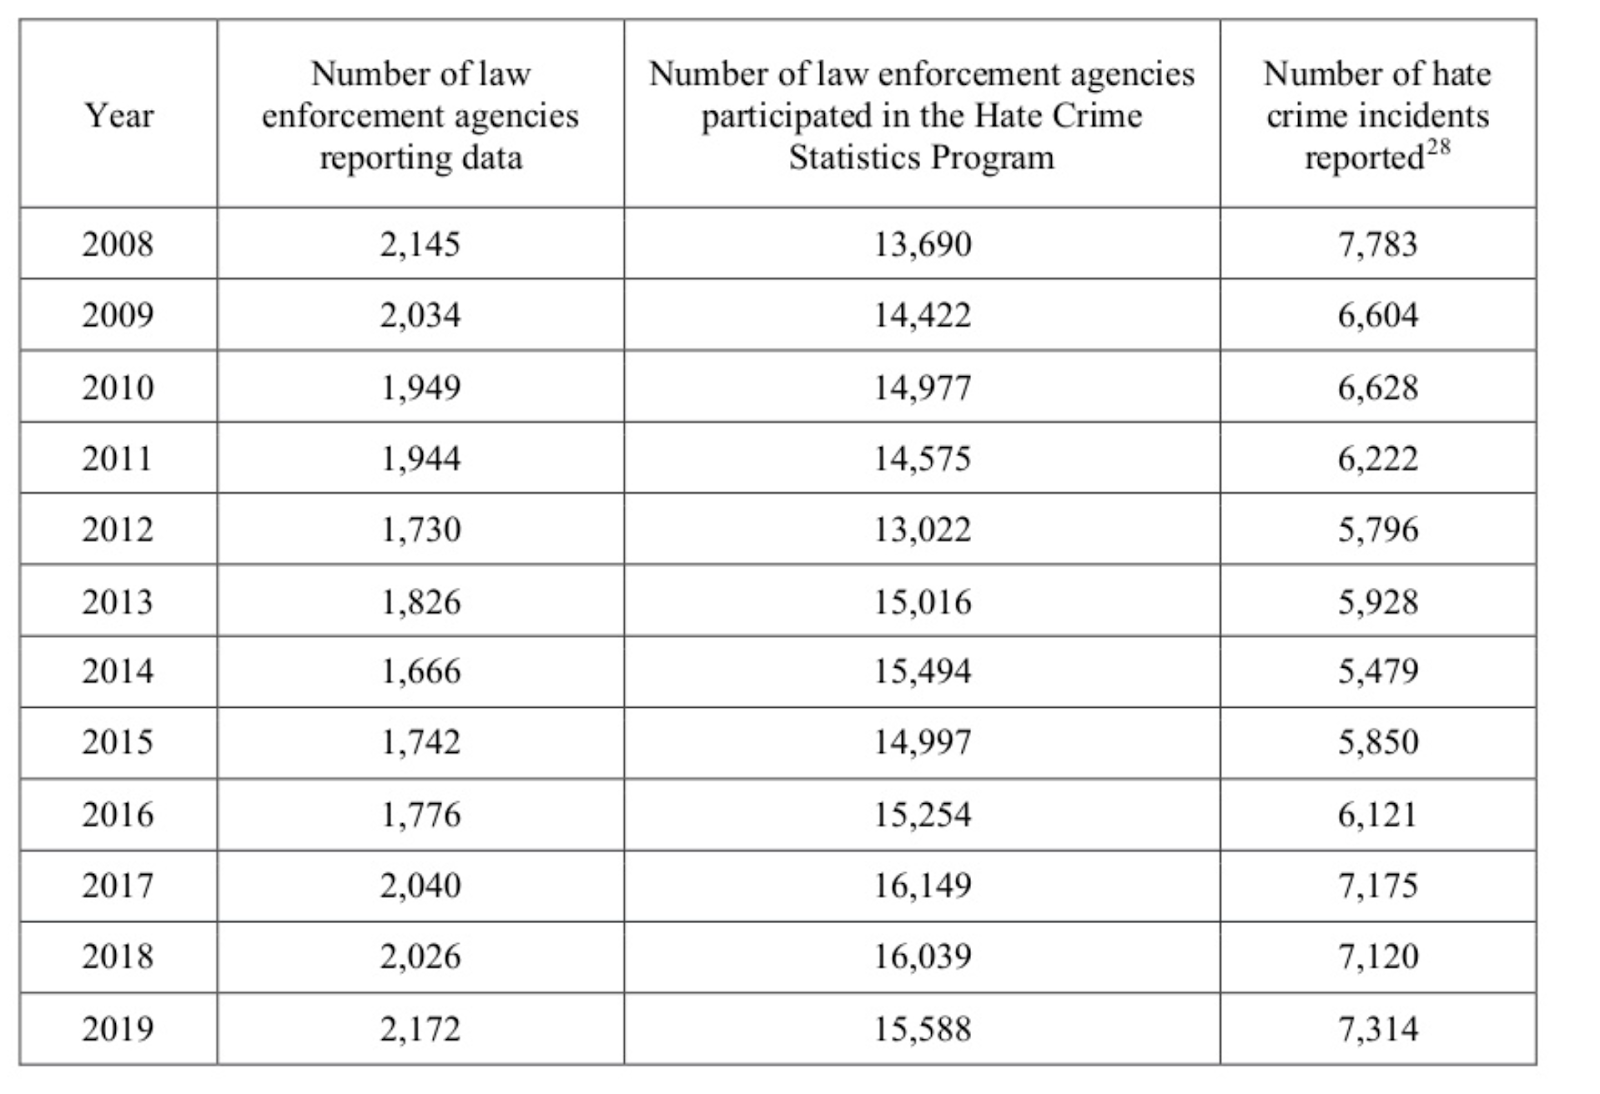 Table showing number of reported hate crime incidents reported against number of law enforcement agencies reporting data between 2008 and 2019.